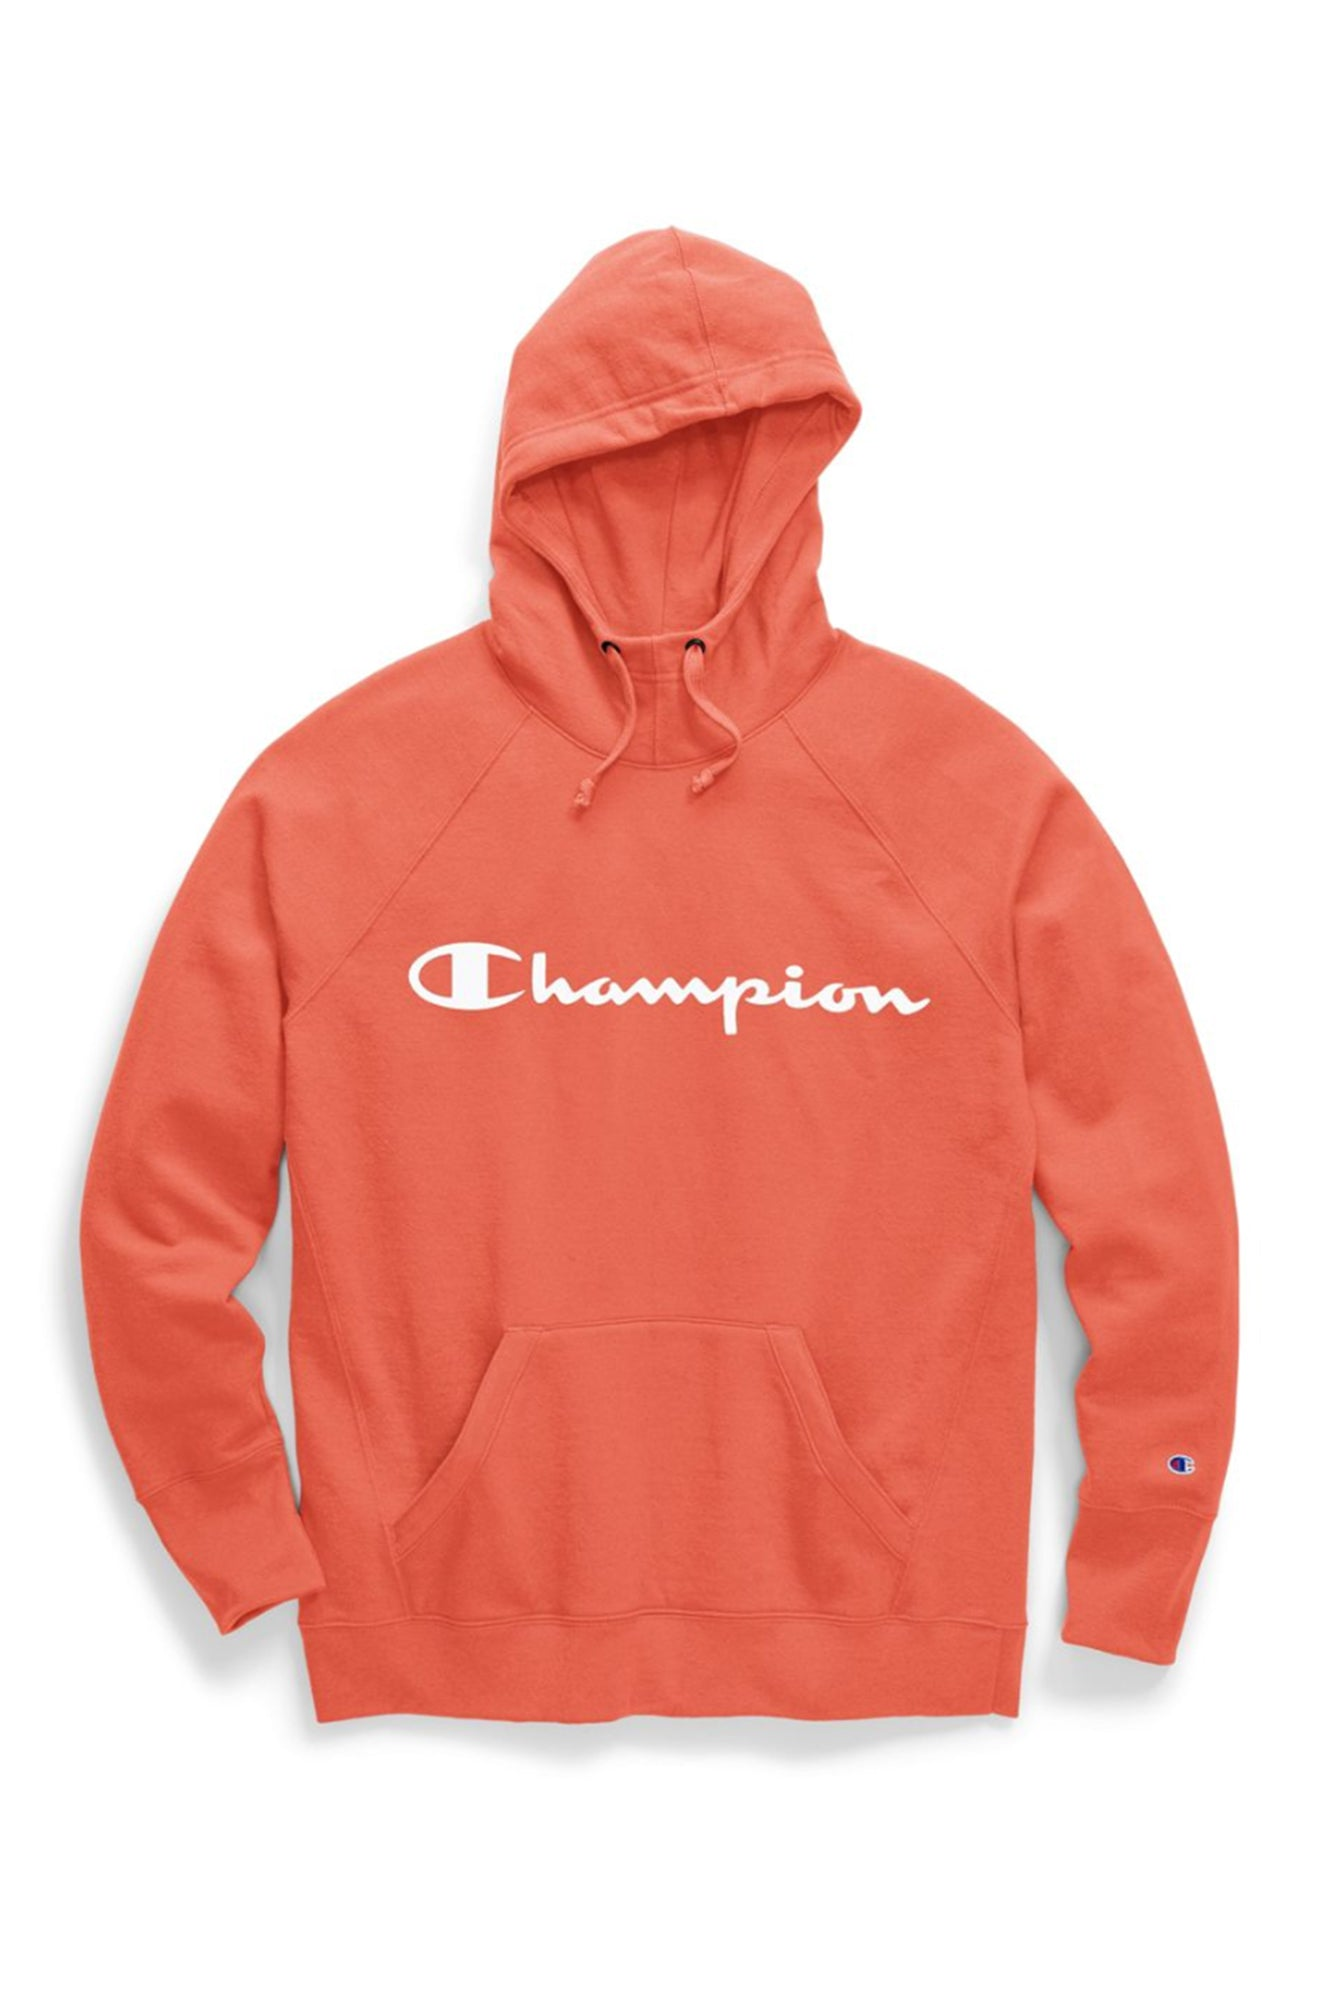 factory outlets most desirable fashion special selection of Champion Women Fleece Pullover Hoodie